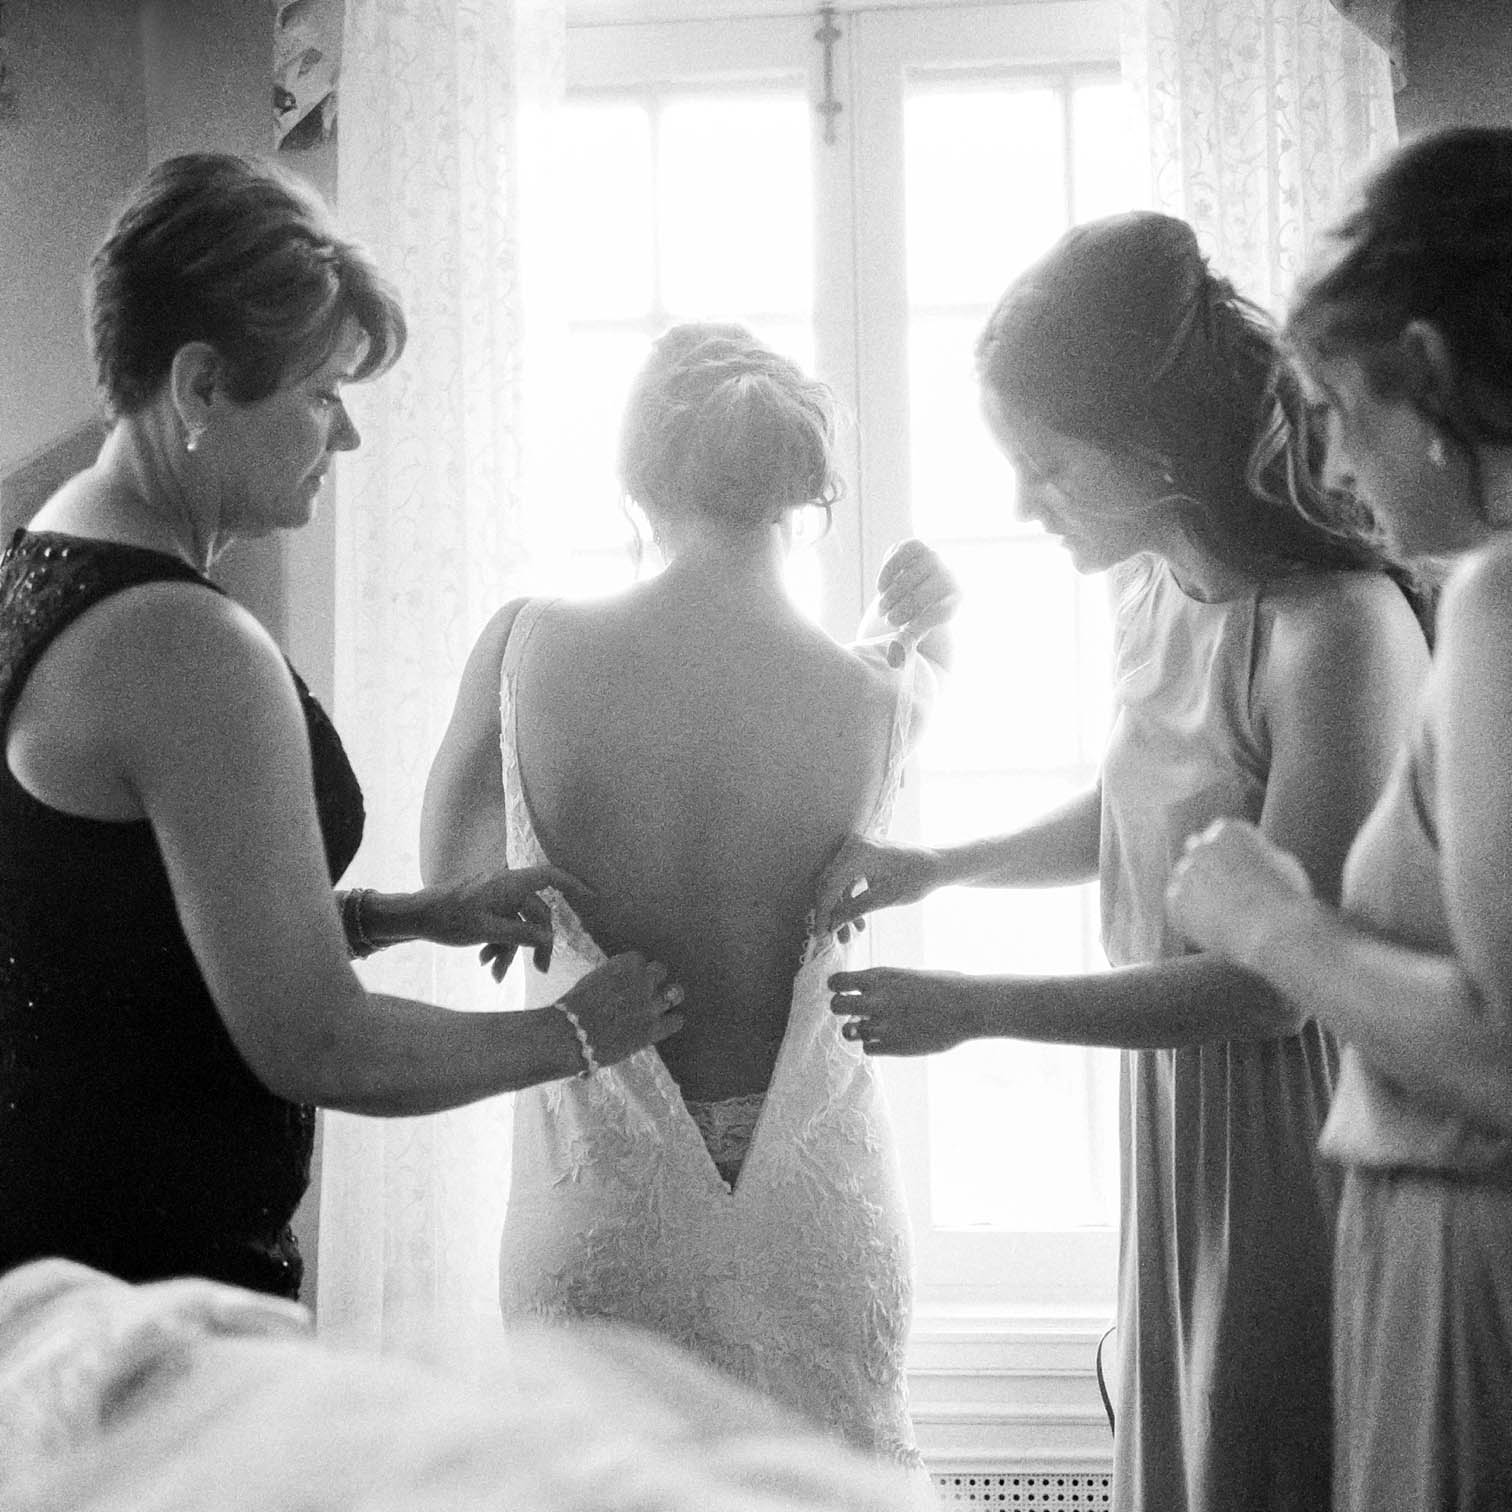 Bride Getting Ready, Lace Wedding Dress, Rolleiflex Camera, Mountain Weddings, Danielle DeFiore Photographer, Colorado Wedding Photographers, Castle Wedding, Classic Black tie Wedding, Film Photographer, Colorado Weddings, Black and White Photography